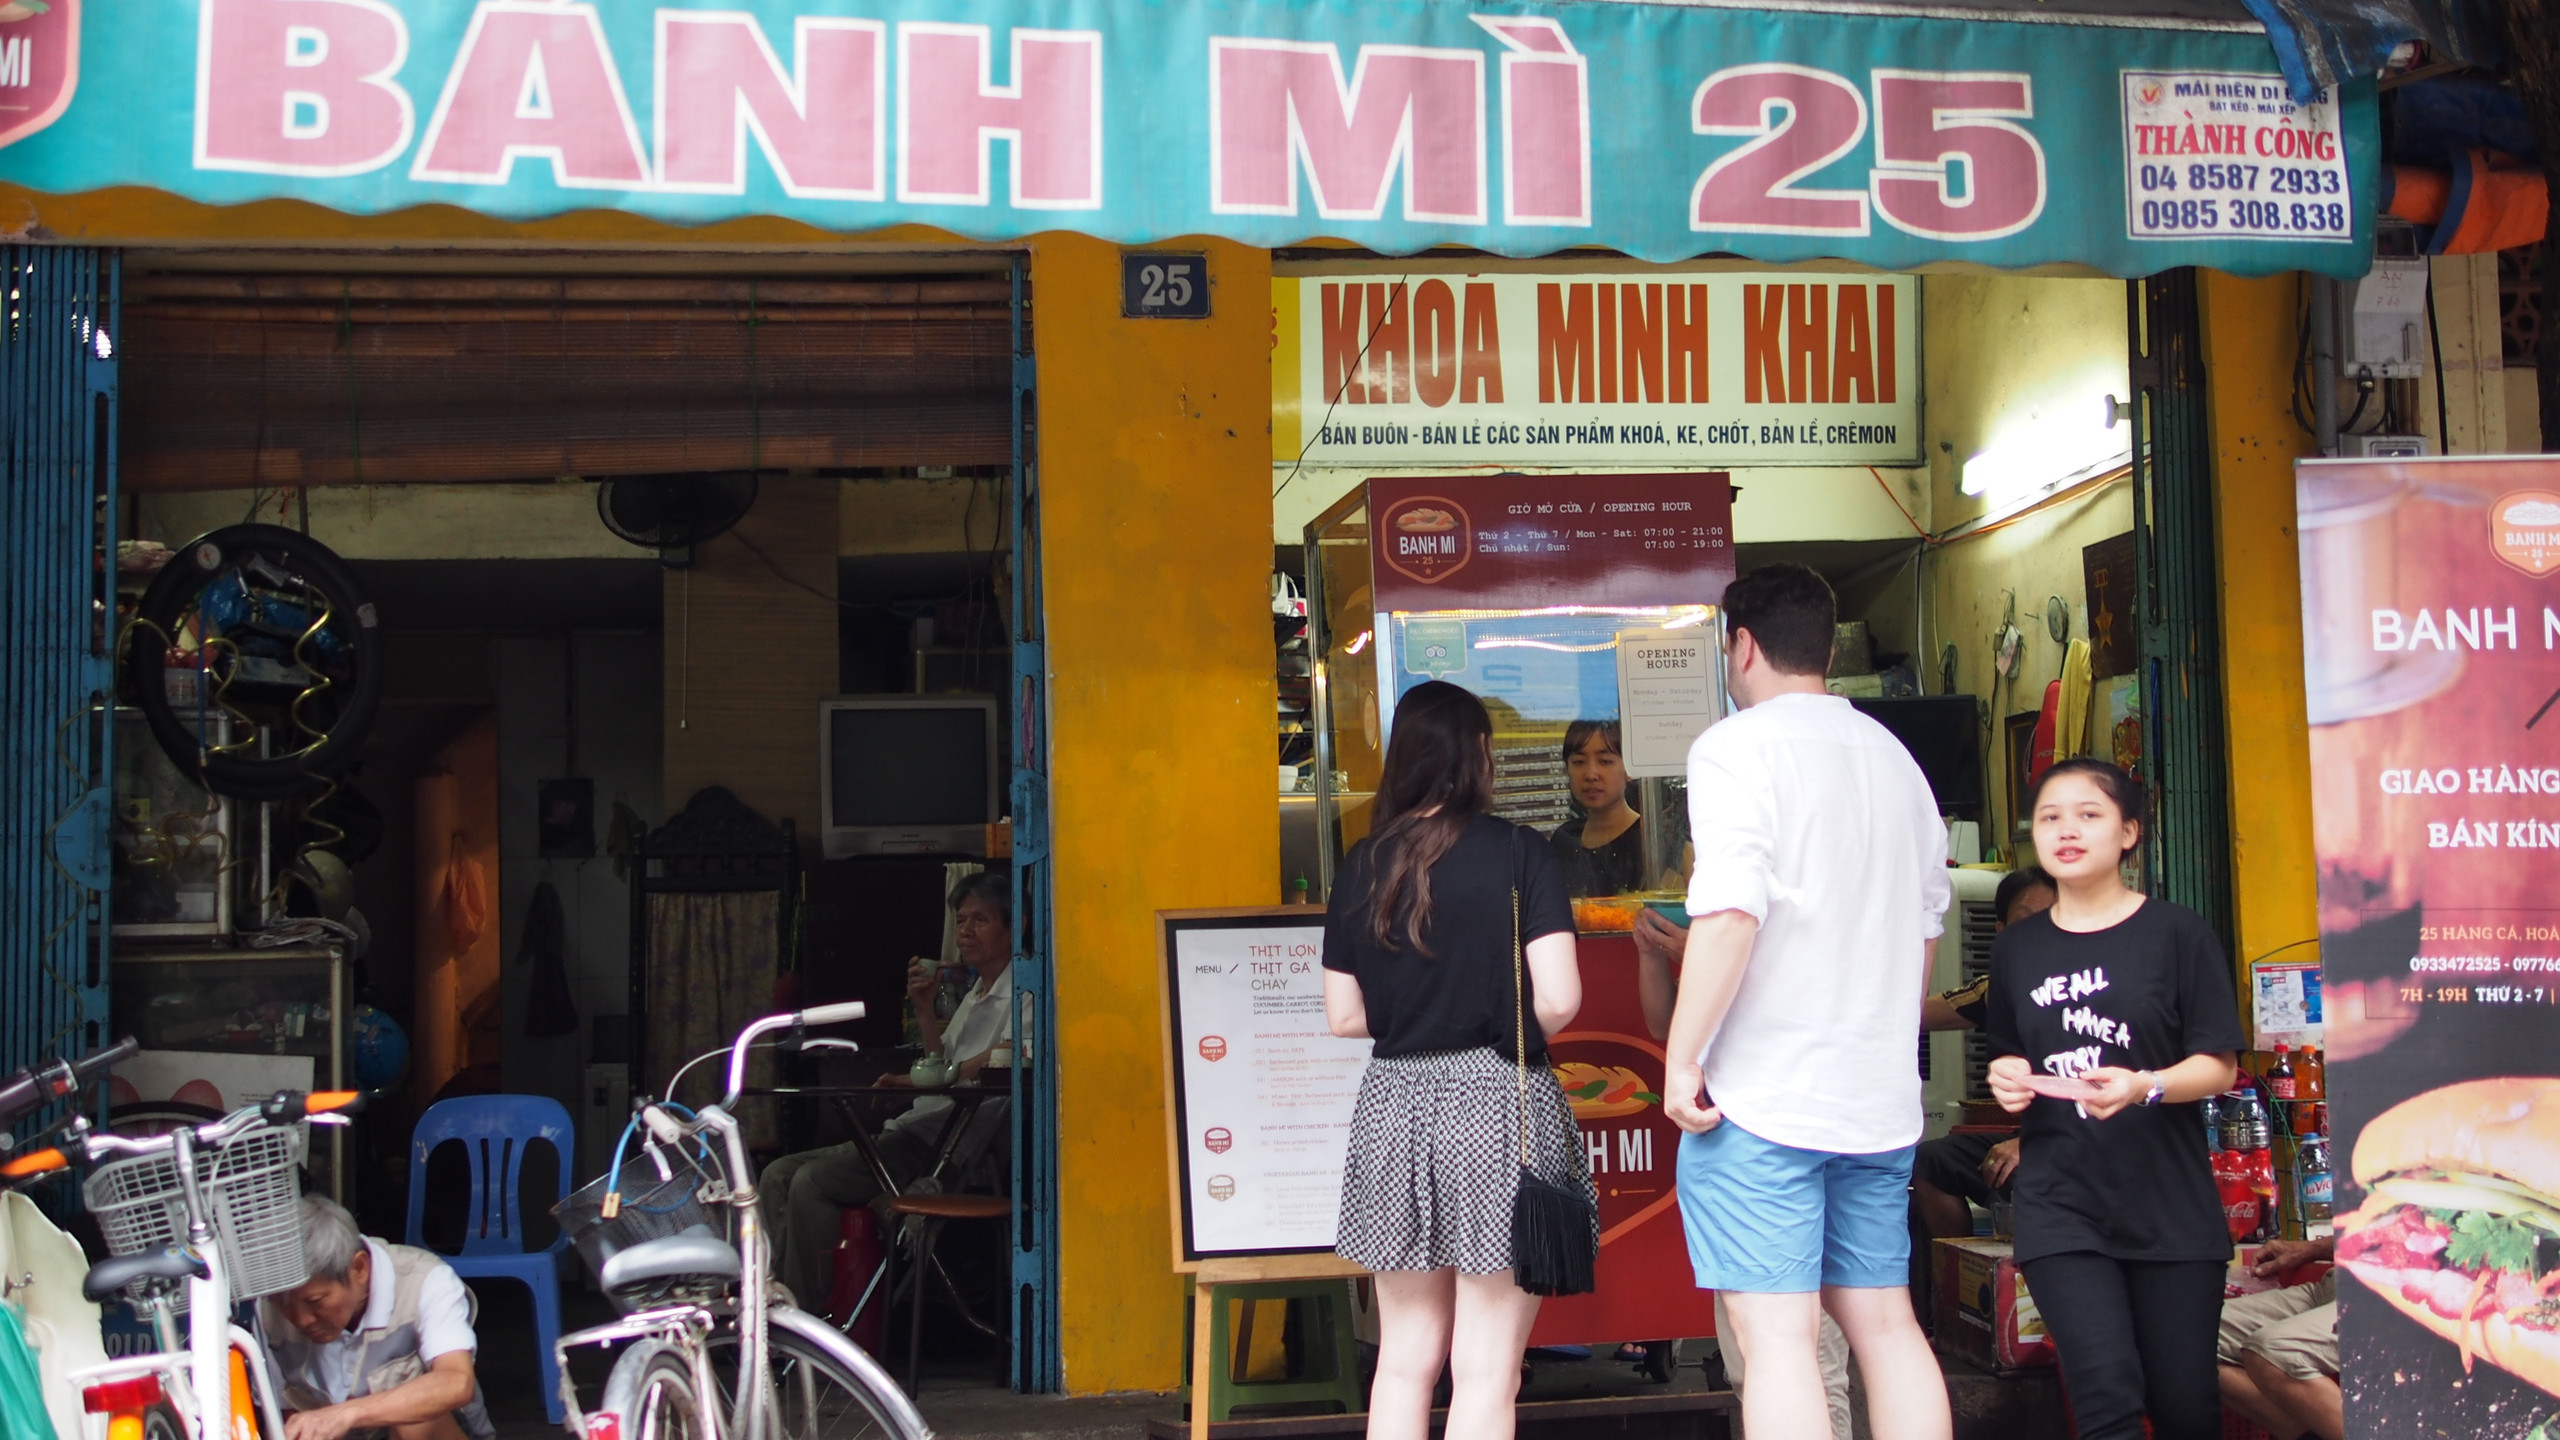 The next banh mi place